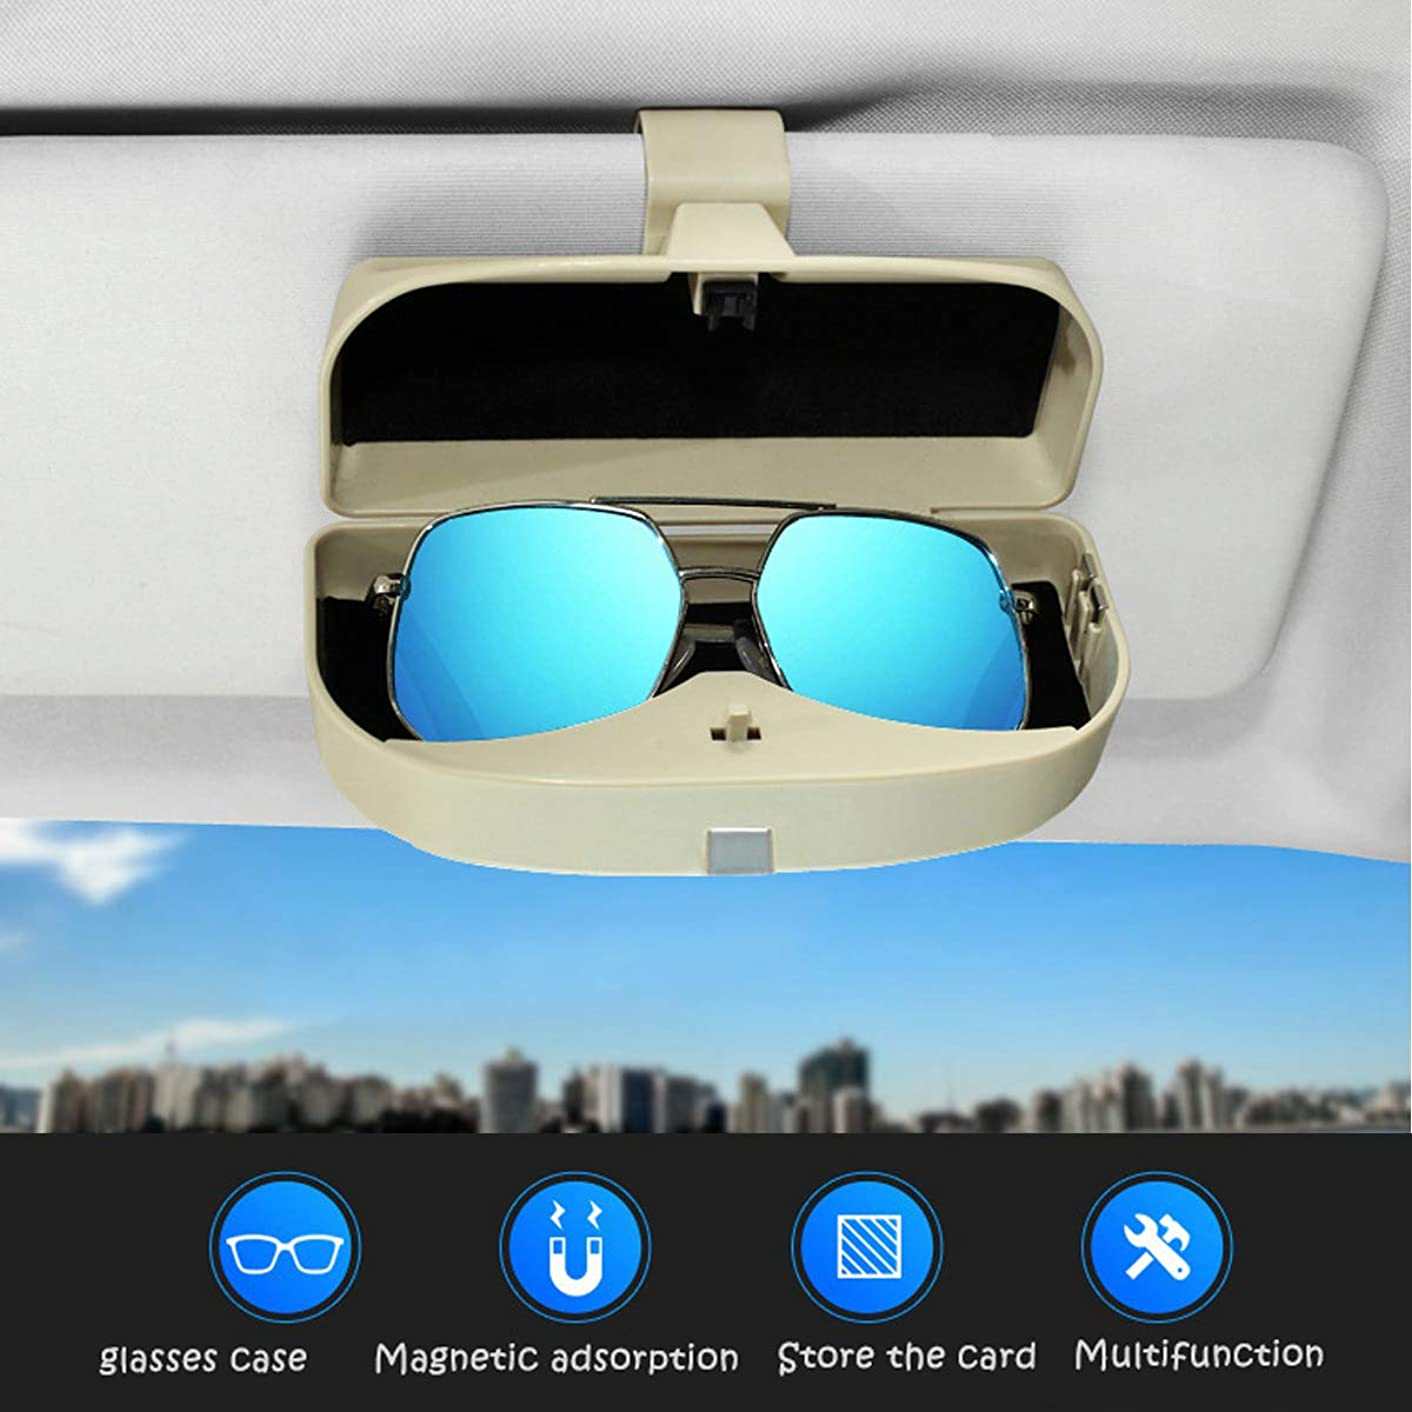 Dualshine Car Sun Visor Glasses Case Clip - Eye Sunglasses Storage Holder Box - Automotive Accessories ABS 1Pcs Apply to All Car Models (Beige)